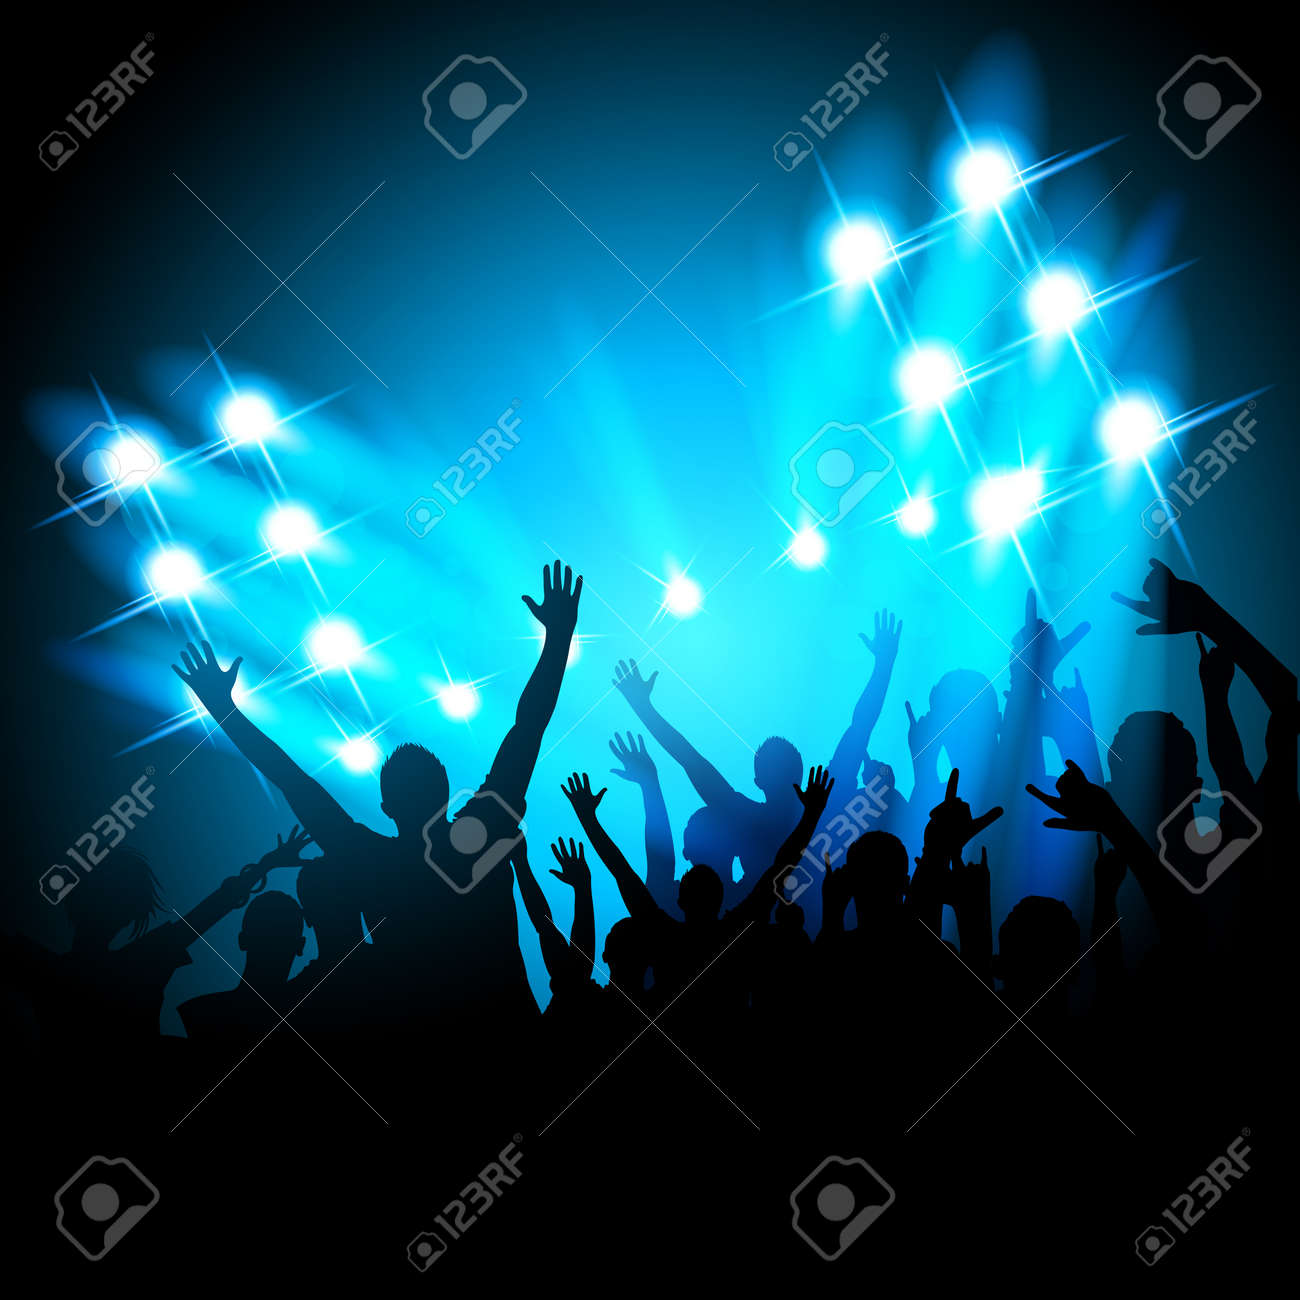 People at a Concert Stock Vector - 9721978